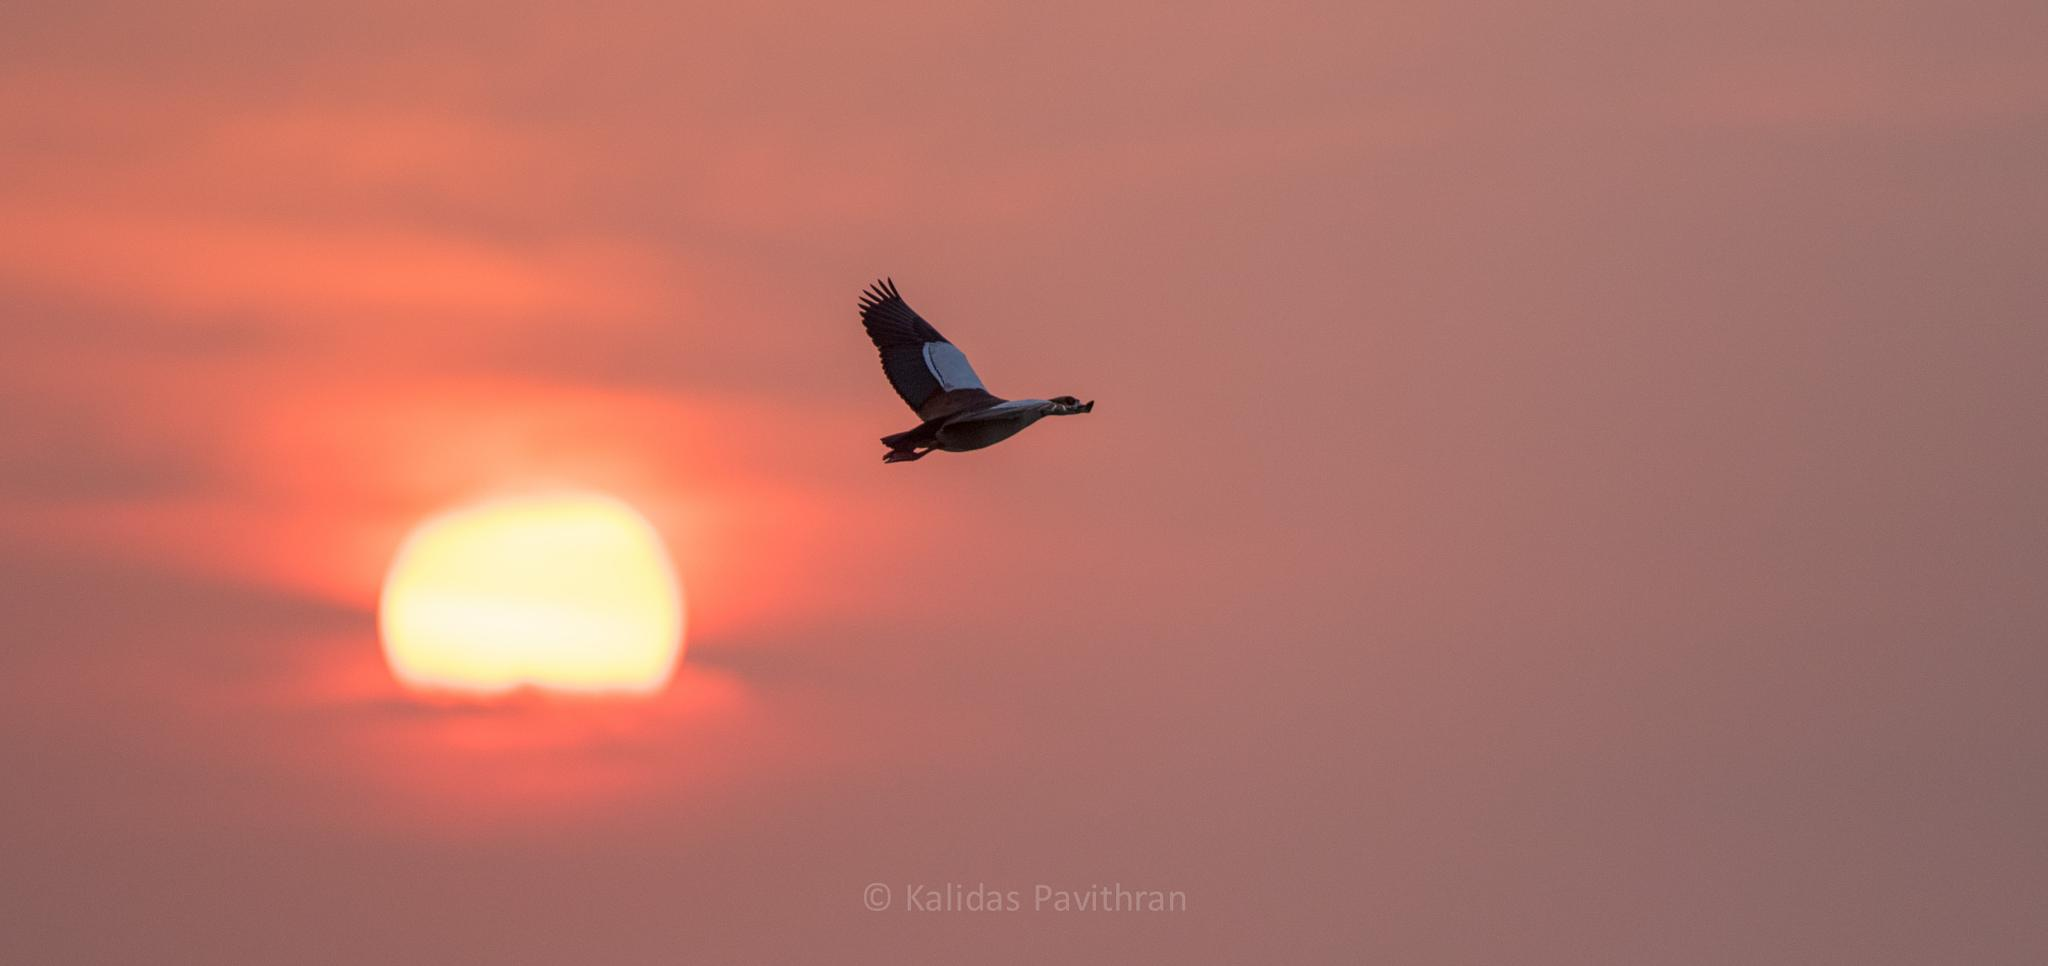 Flying High by Kalidas Pavithran